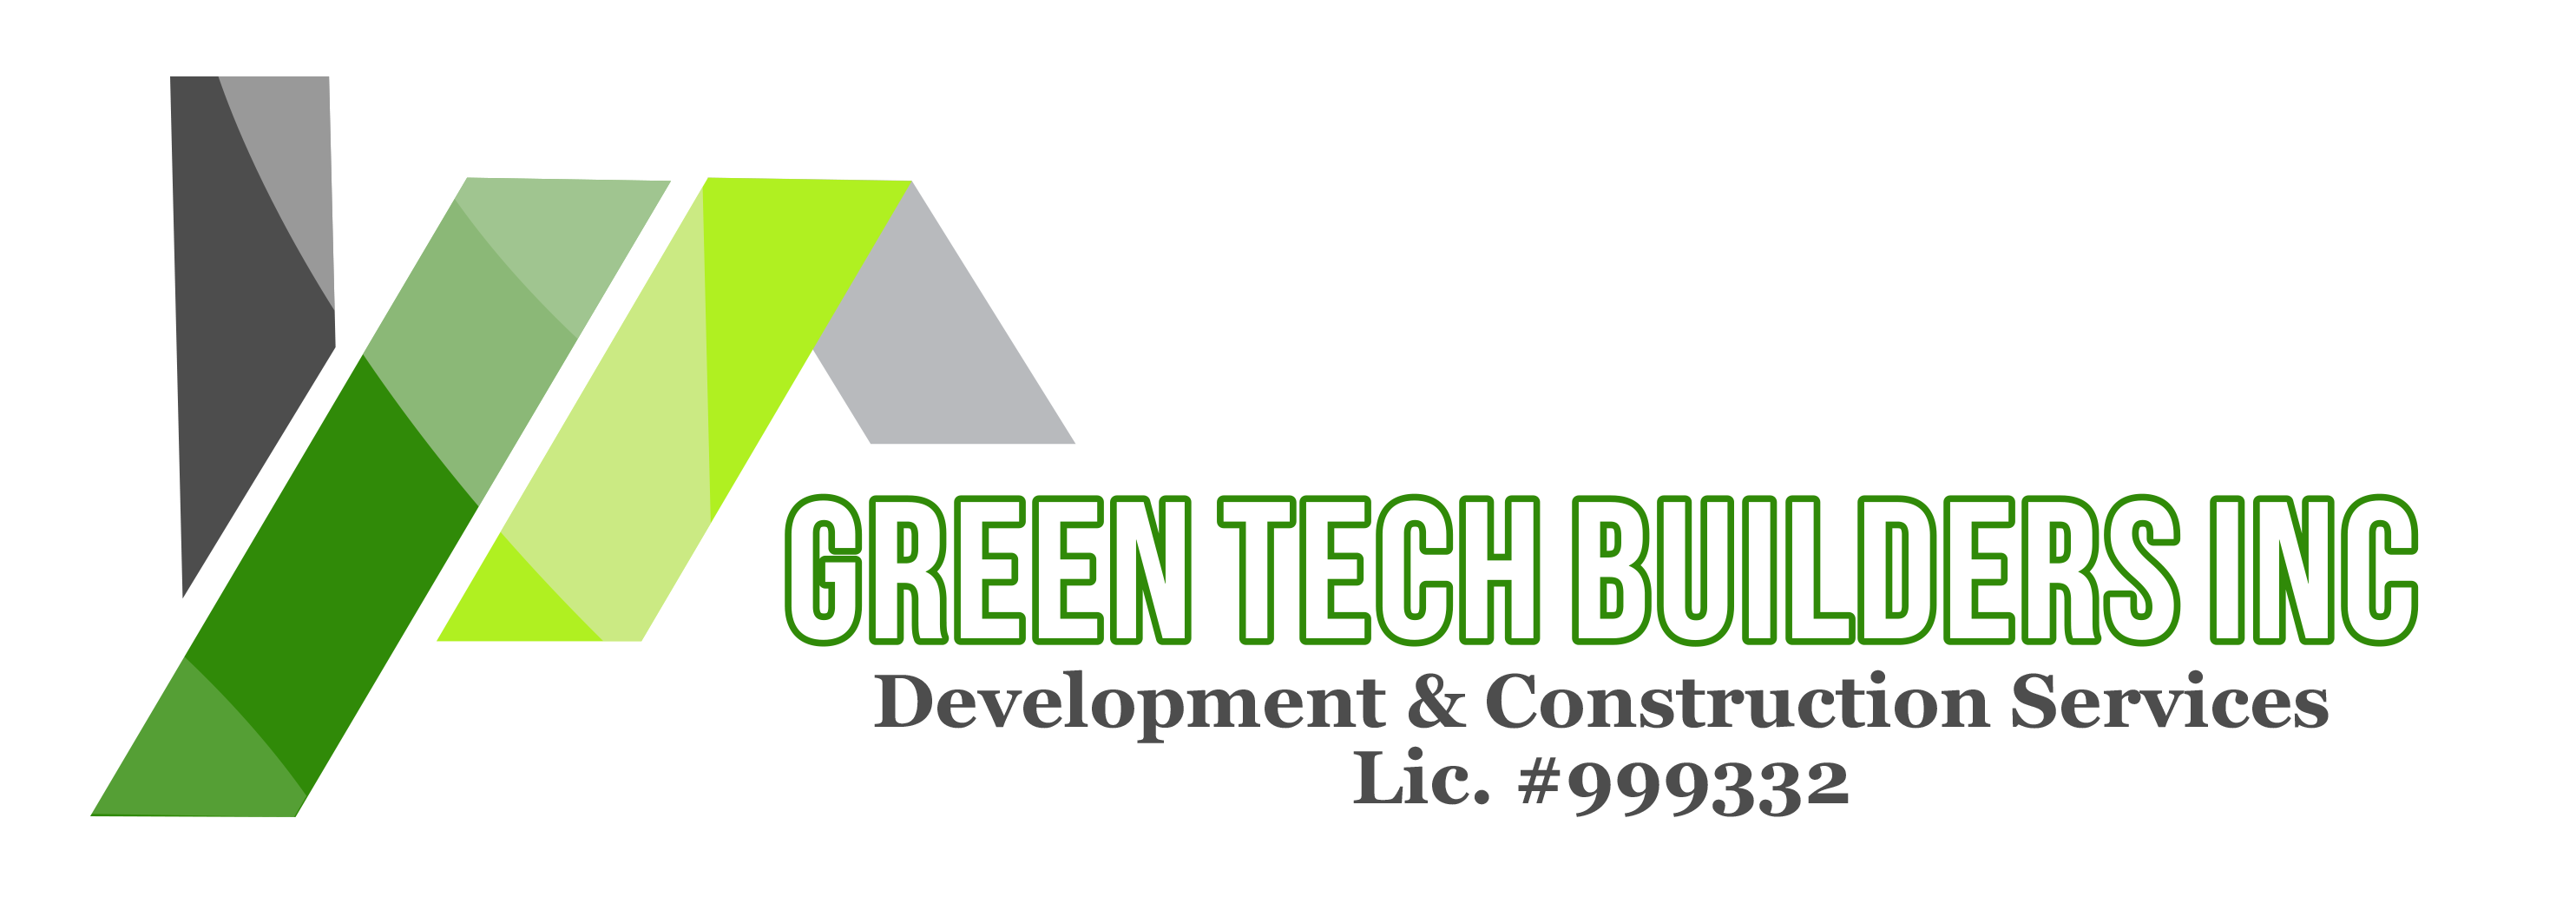 GreenTech Builders Inc.